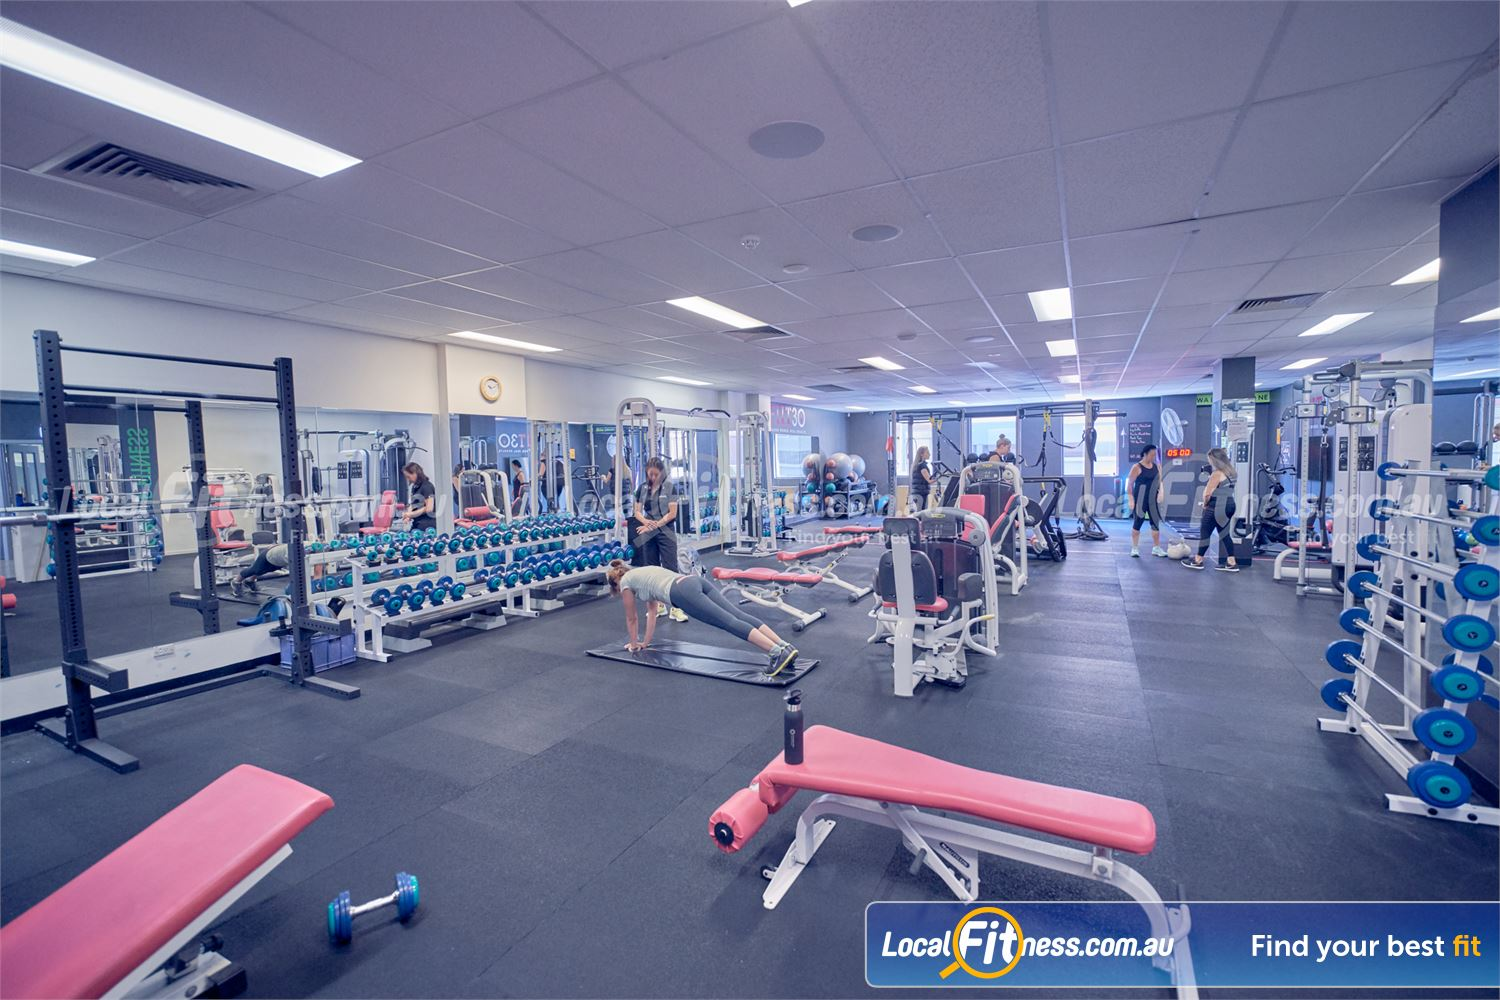 Fernwood Fitness St Kilda Fernwood St Kilda Women's gym provides a fully equipped free-weights area.